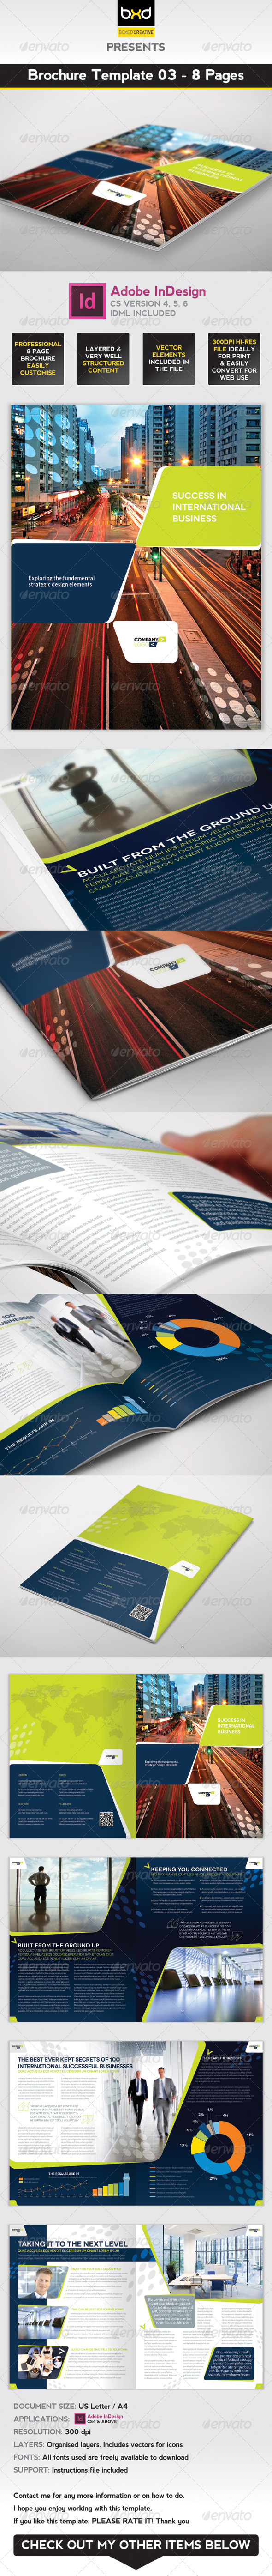 Brochure Template - InDesign 8 Page Layout 03 - Corporate Brochures